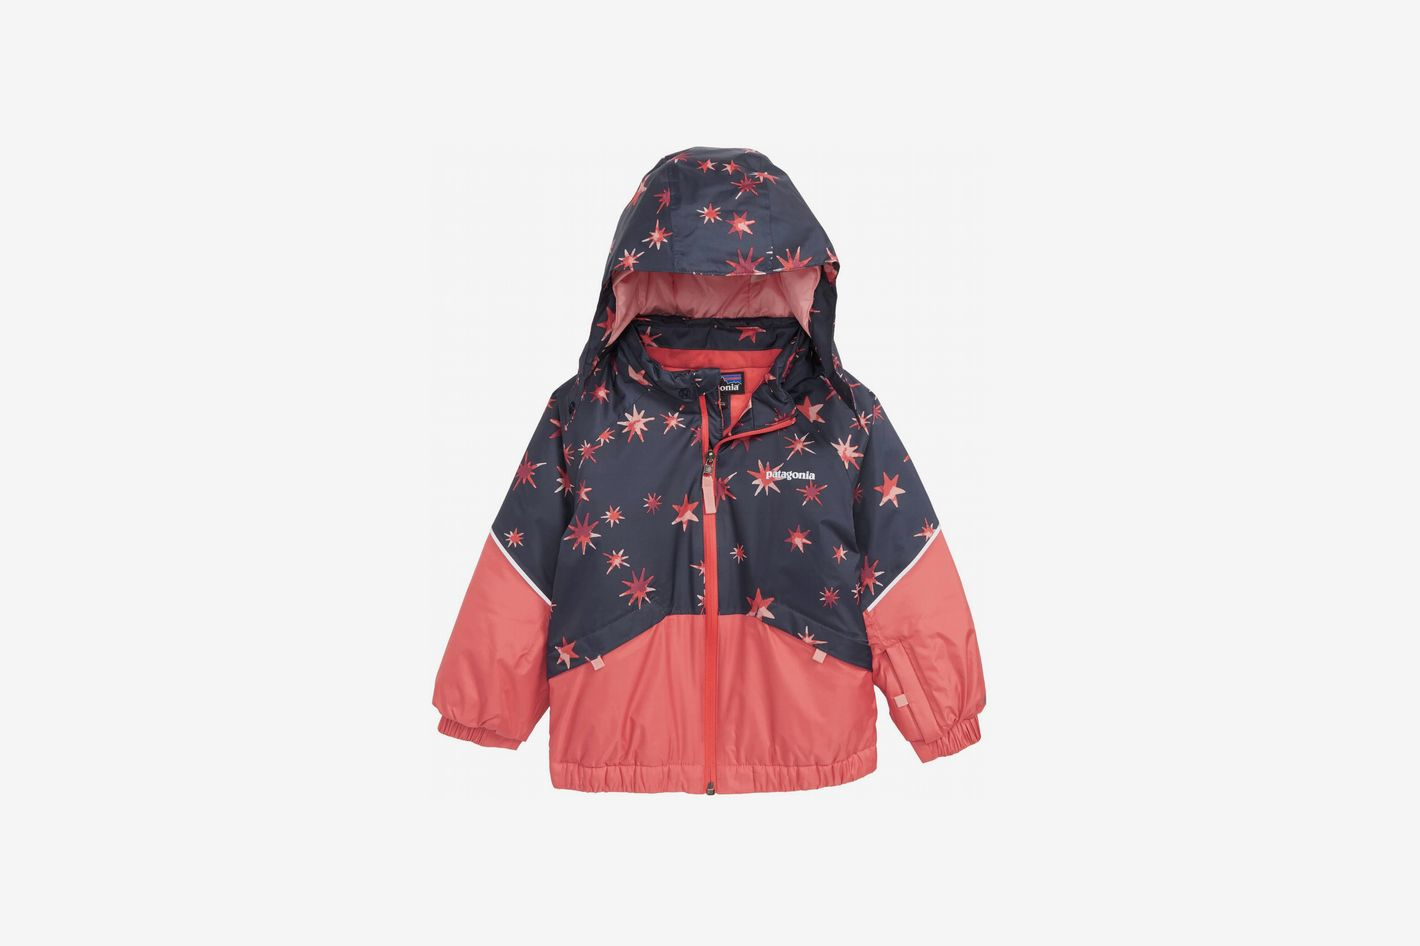 16 Patagonia Kids Jackets On Sale At Nordstrom 2019